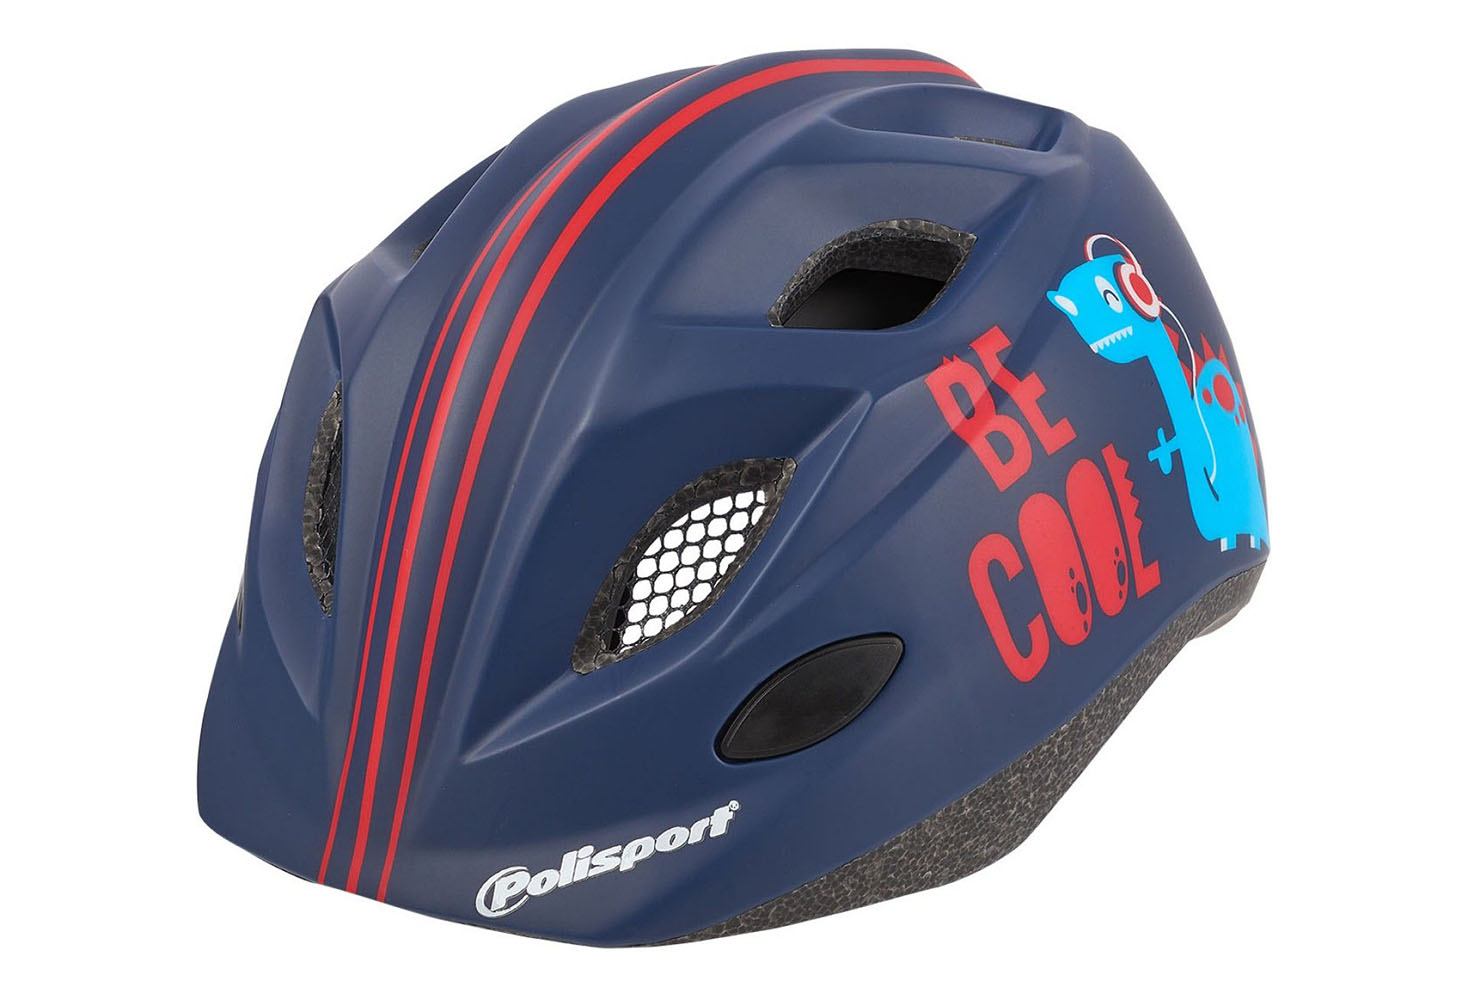 KACIGA POLISPORT PREMIUM DARK BLUE/RED